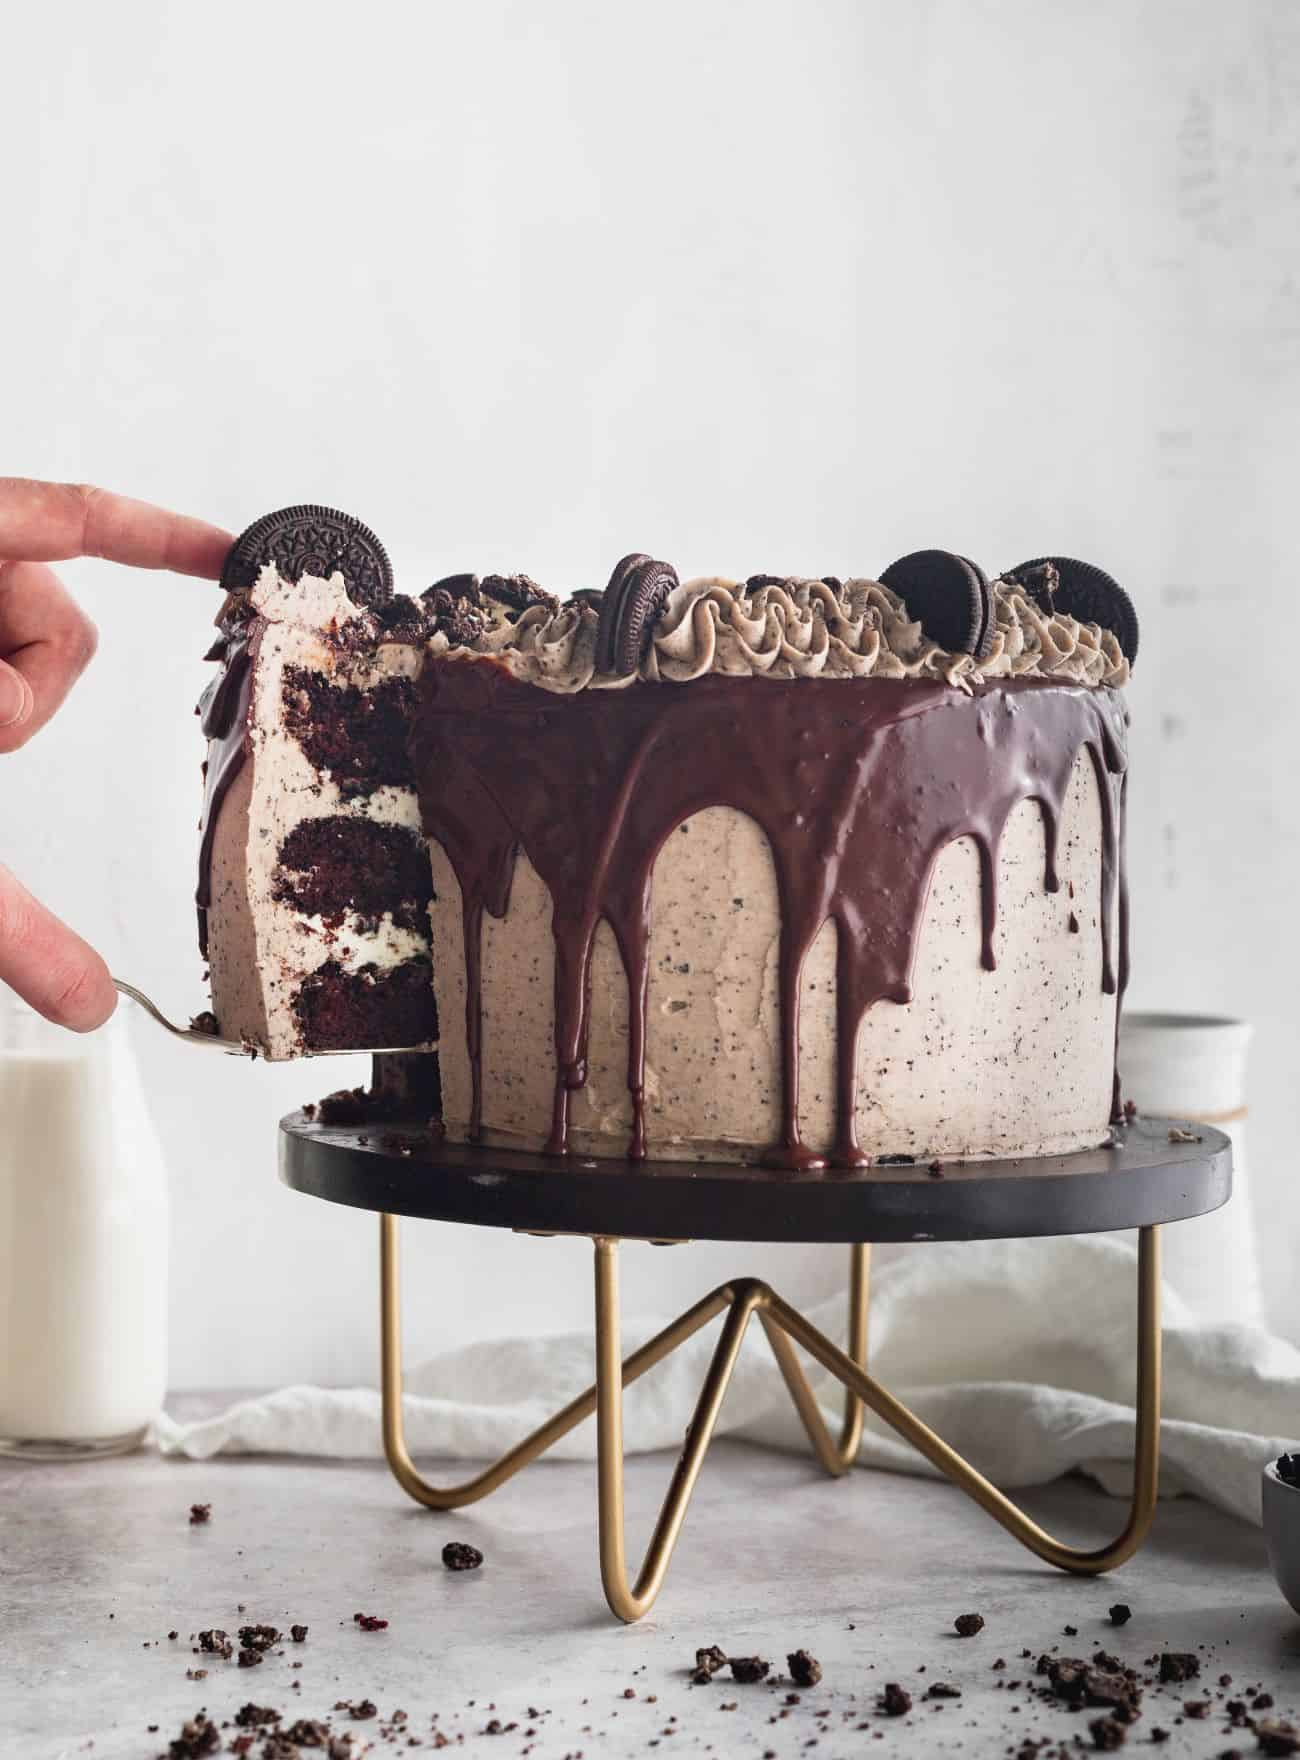 Cookies and cream cake with a slice being take out.